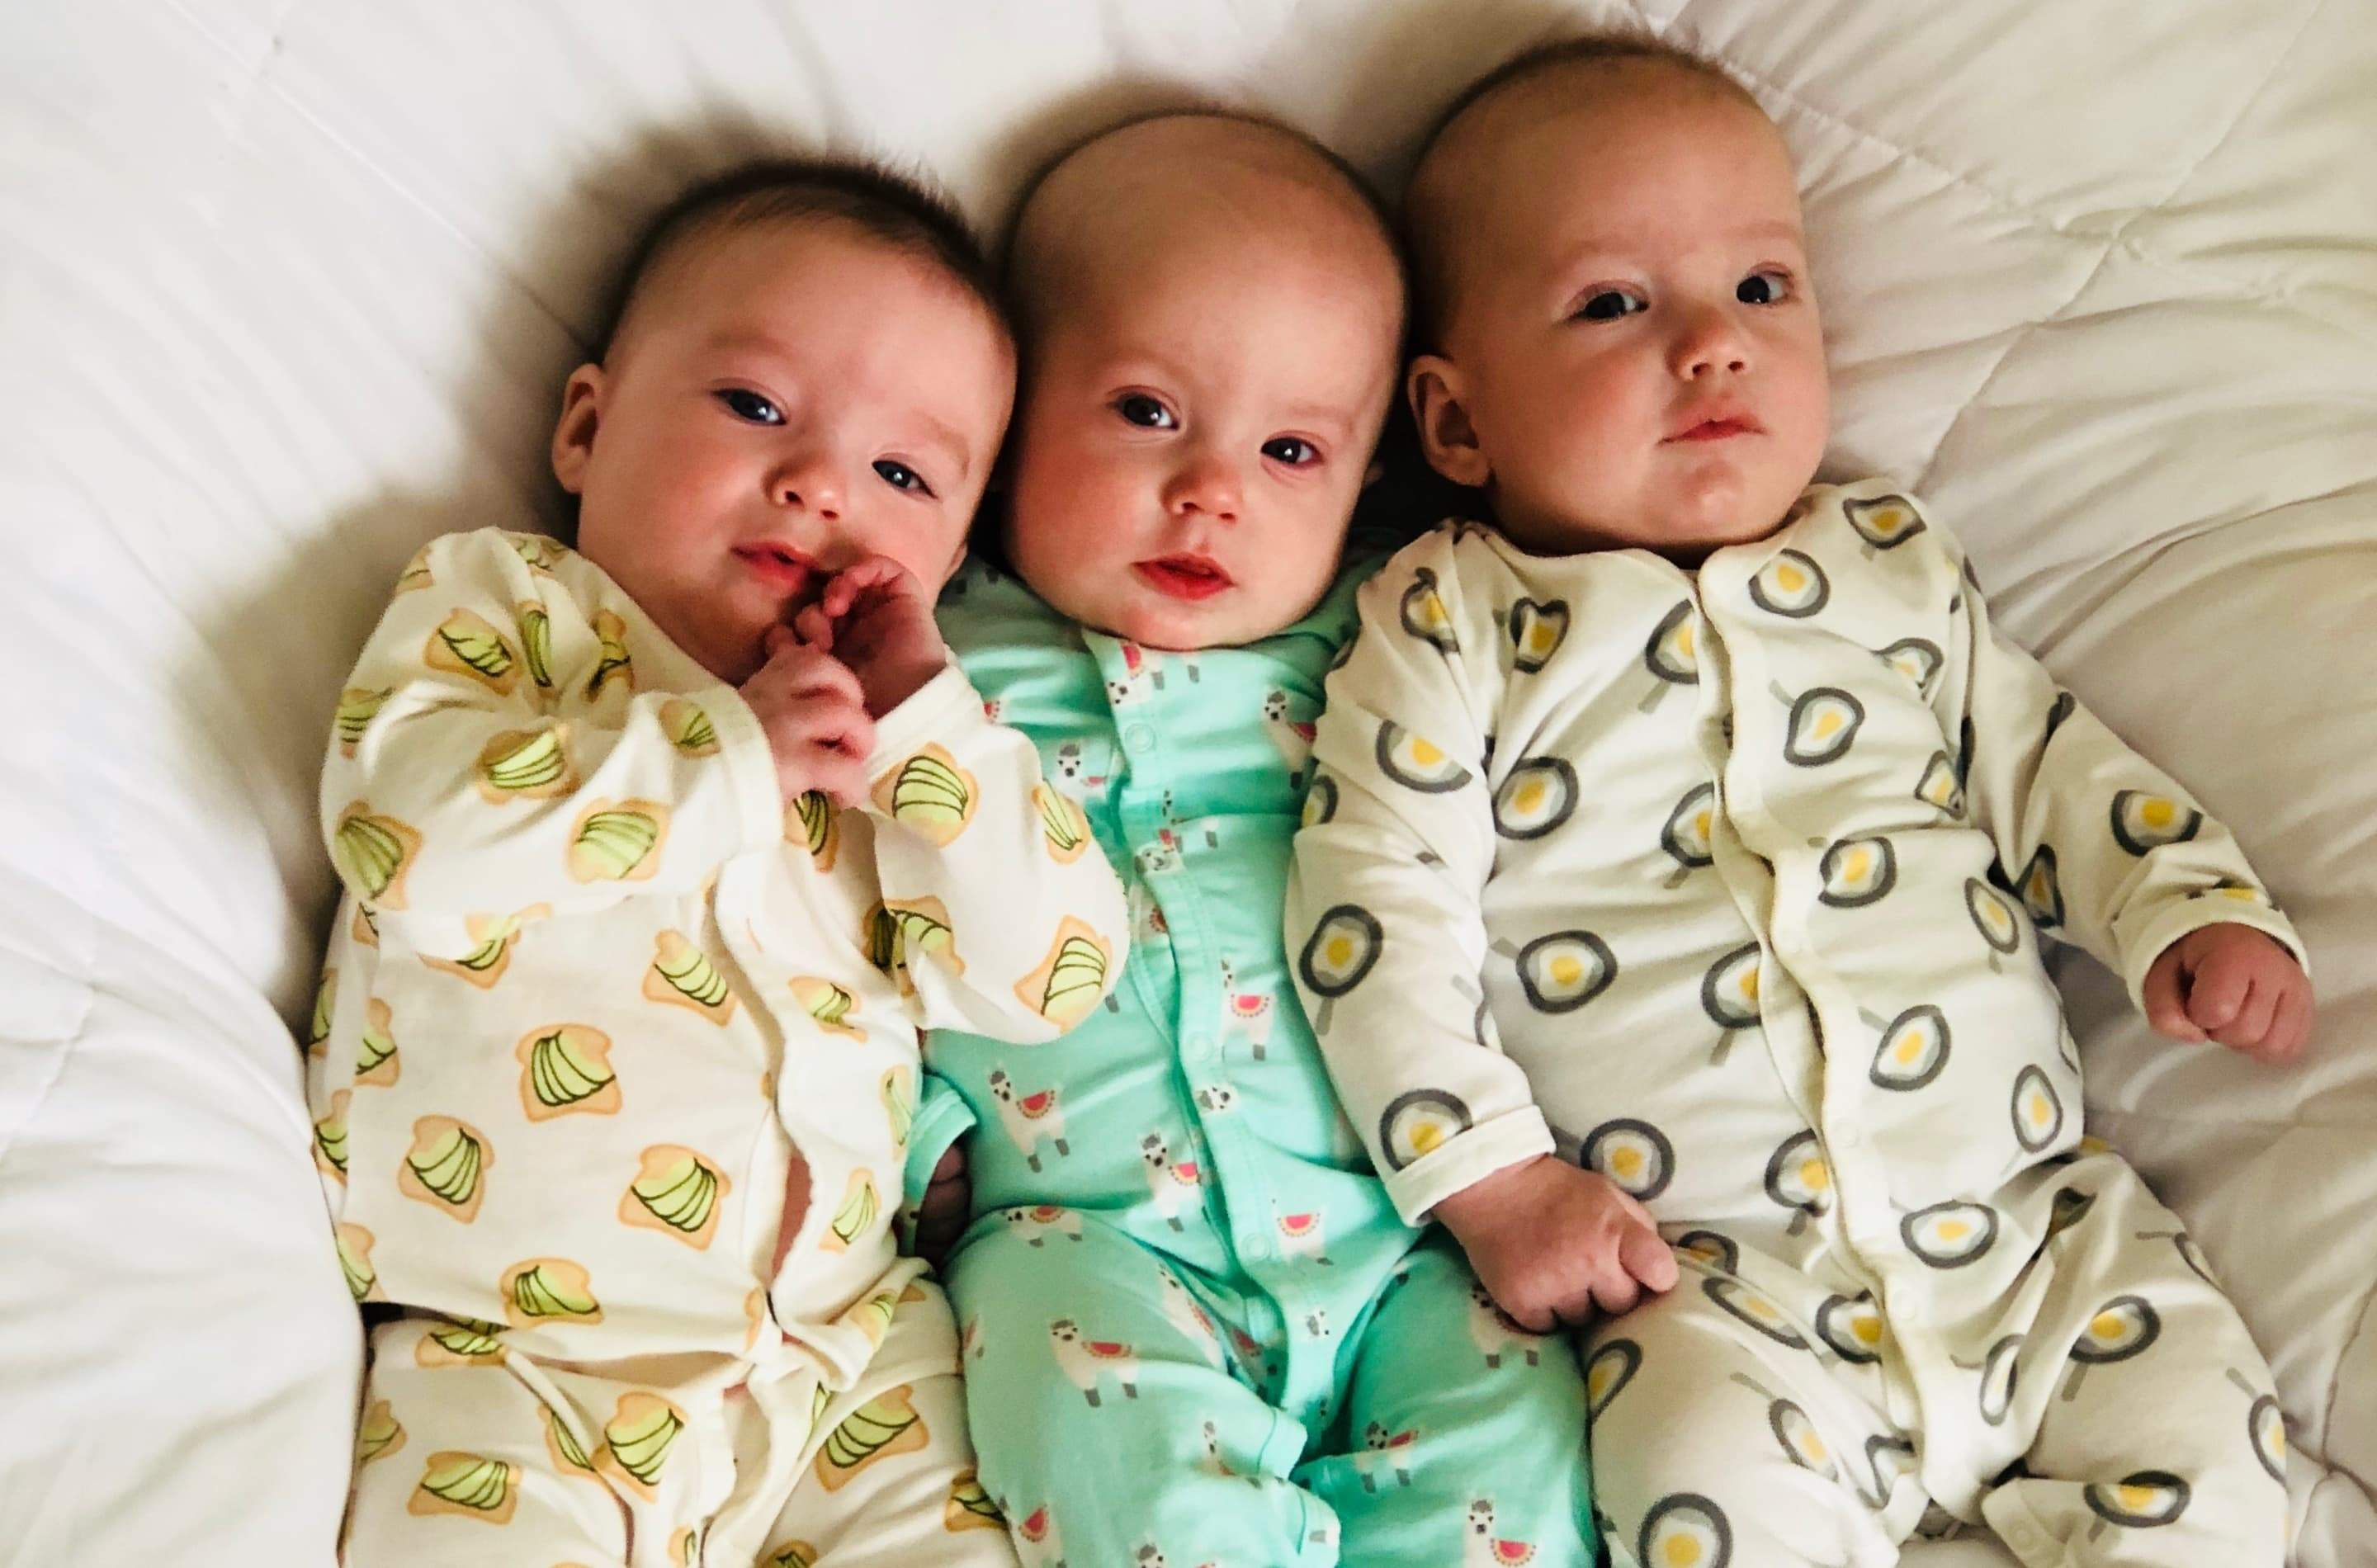 Secrets From a Labor and Delivery Nurse: How I Juggle My Triplets